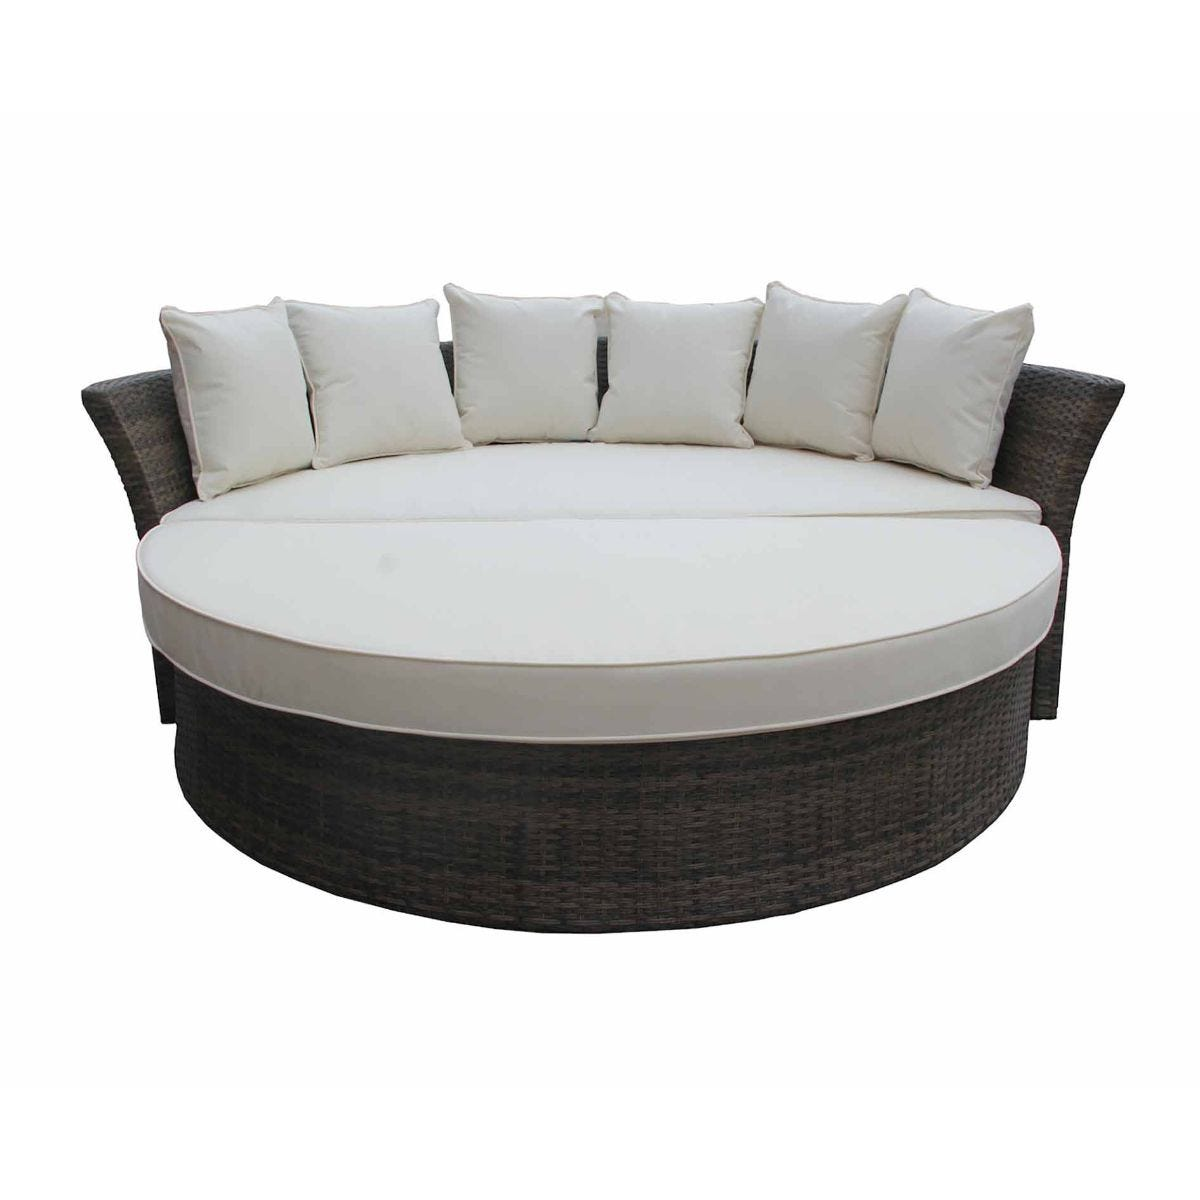 Charles Bentley Multifunctional Rattan Day Bed, Natural